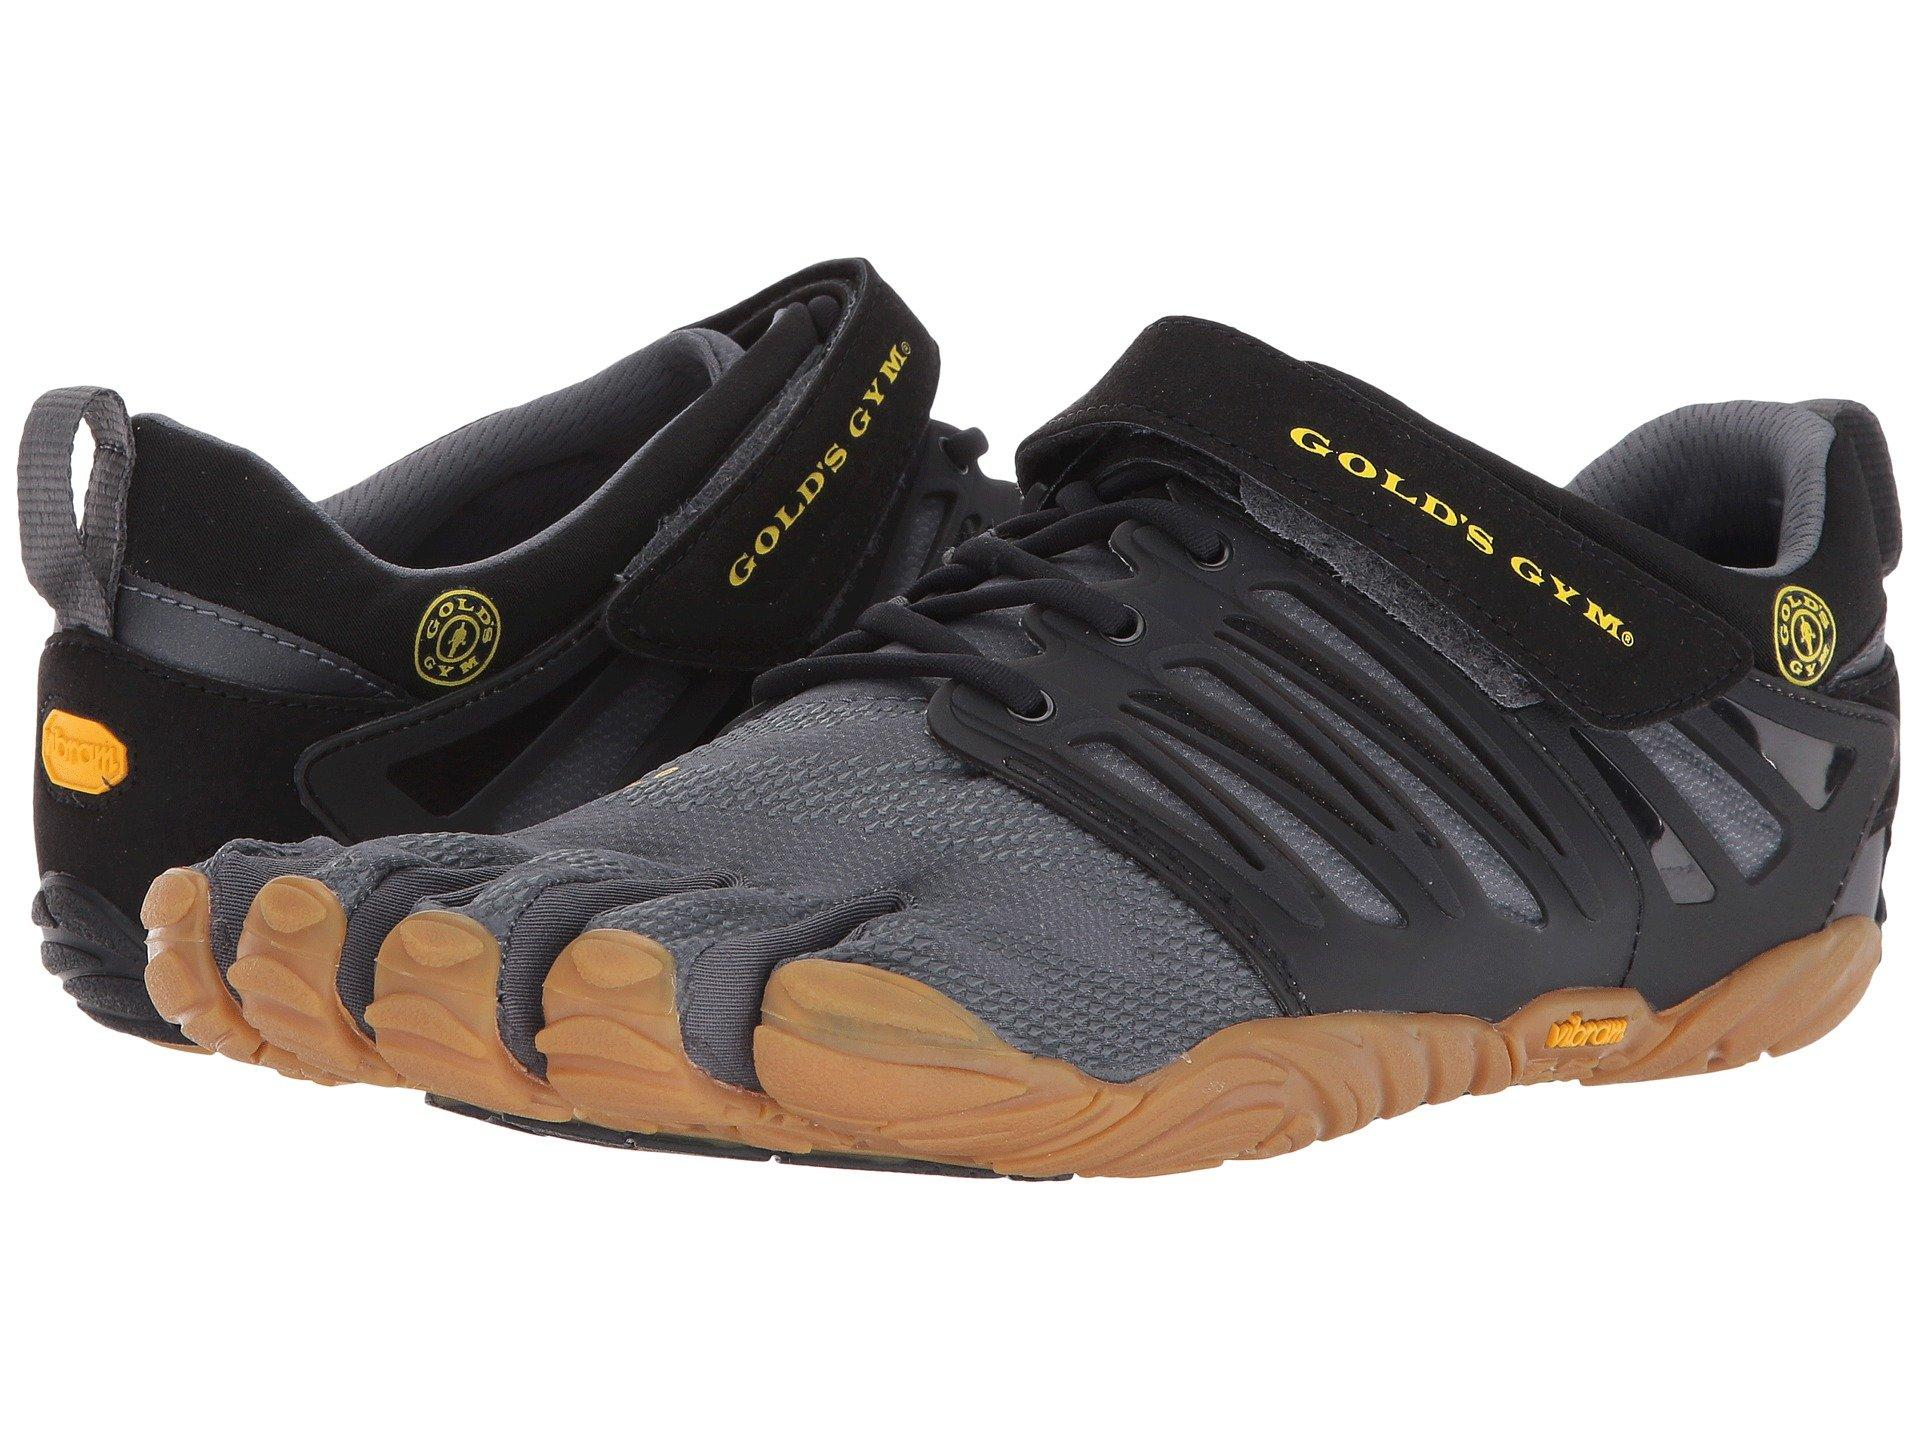 premium selection b16ef 57520 Vibram Fivefingers - Multicolor V-train Gold s Gym for Men - Lyst